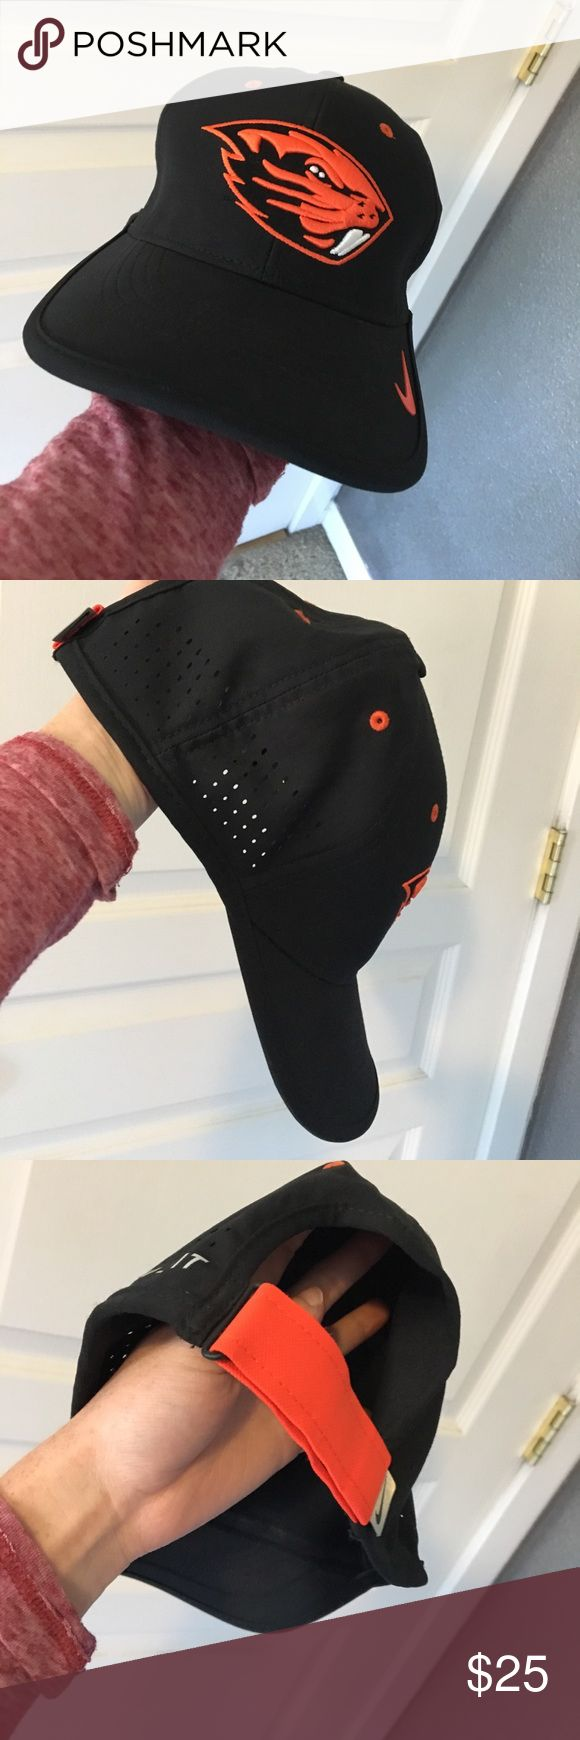 OSU Nike Dryfit Hat. Brand: Nike. Color: Black & Orange Beaver. Perfect for fans and game days! Go beavs!!!! Dry fit material. Waterproof. Super light, soft and comfortable. Baseball hat style. Nike Accessories Hats